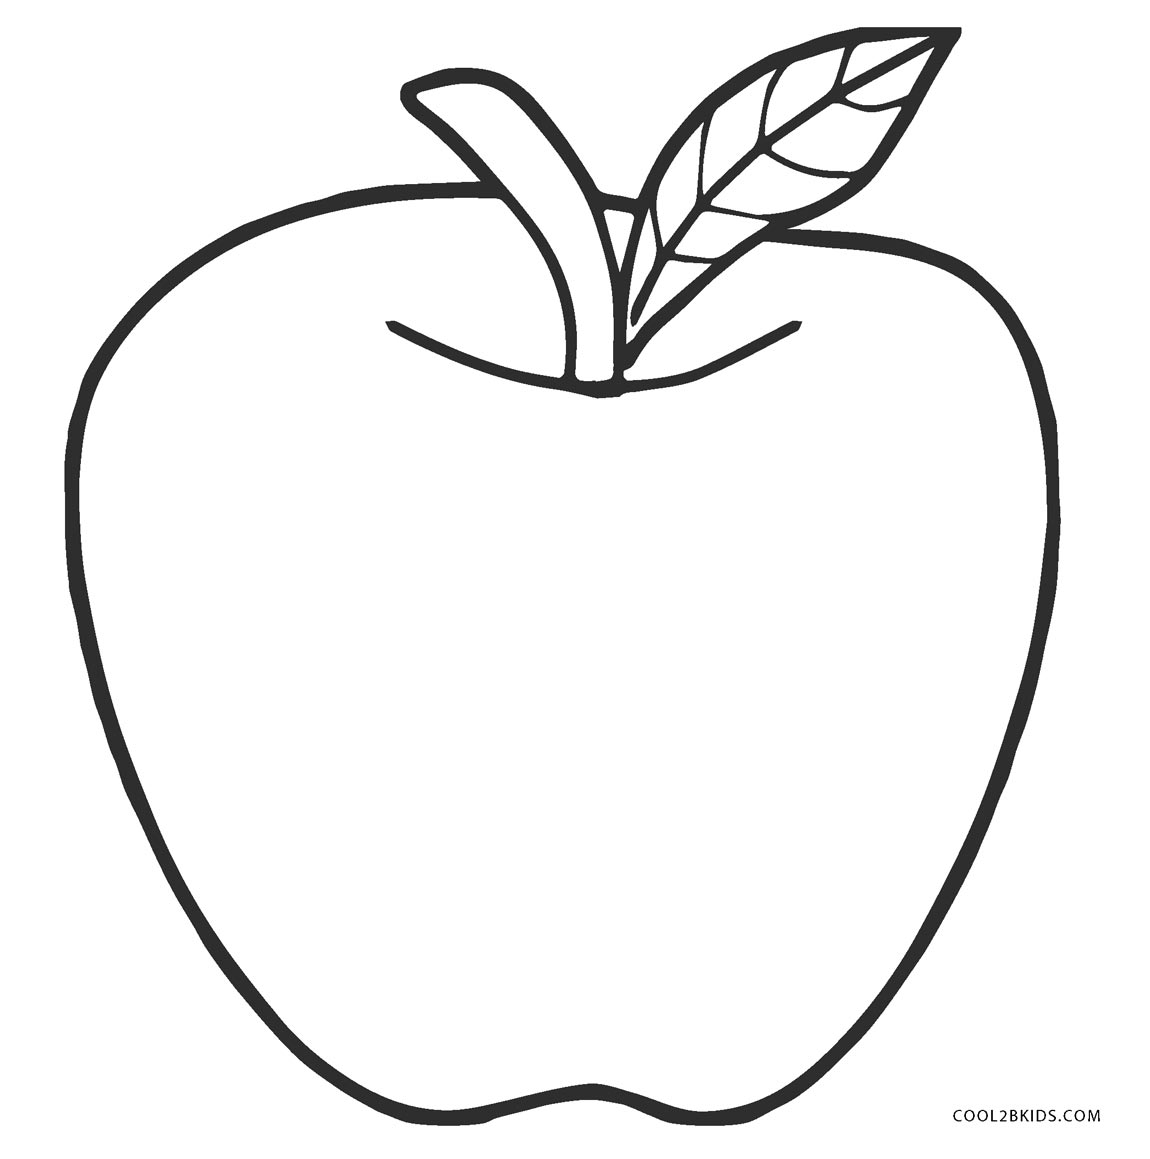 apple coloring for kids apple drawing for kids google search apple coloring apple kids for coloring